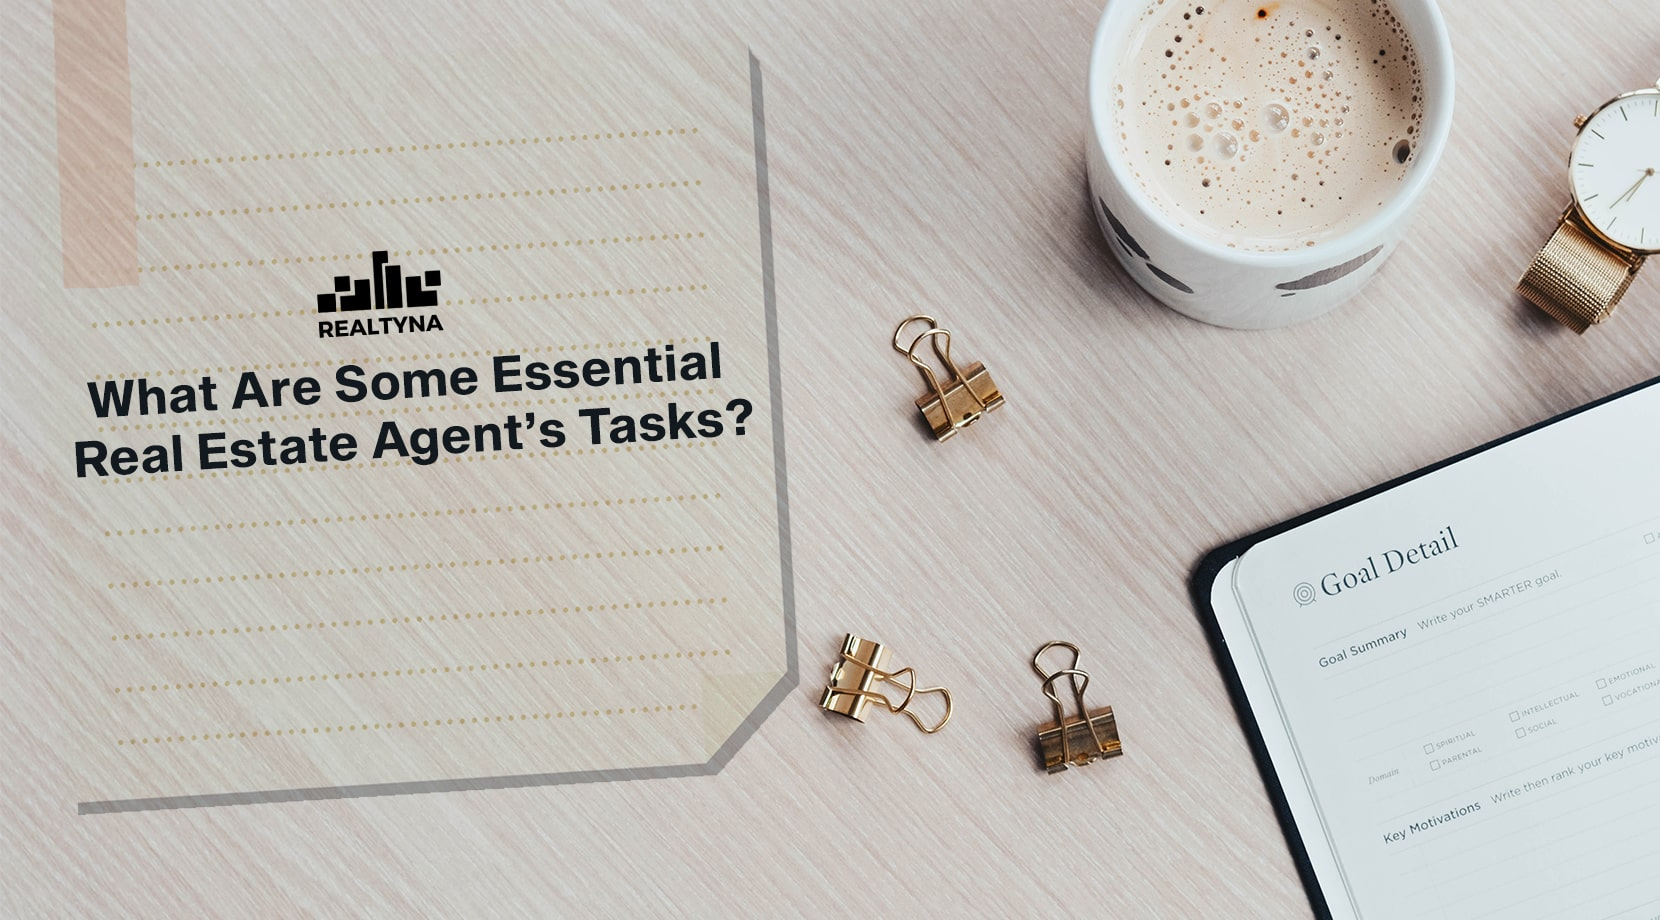 What Are Some Essential Real Estate Agents' Tasks?